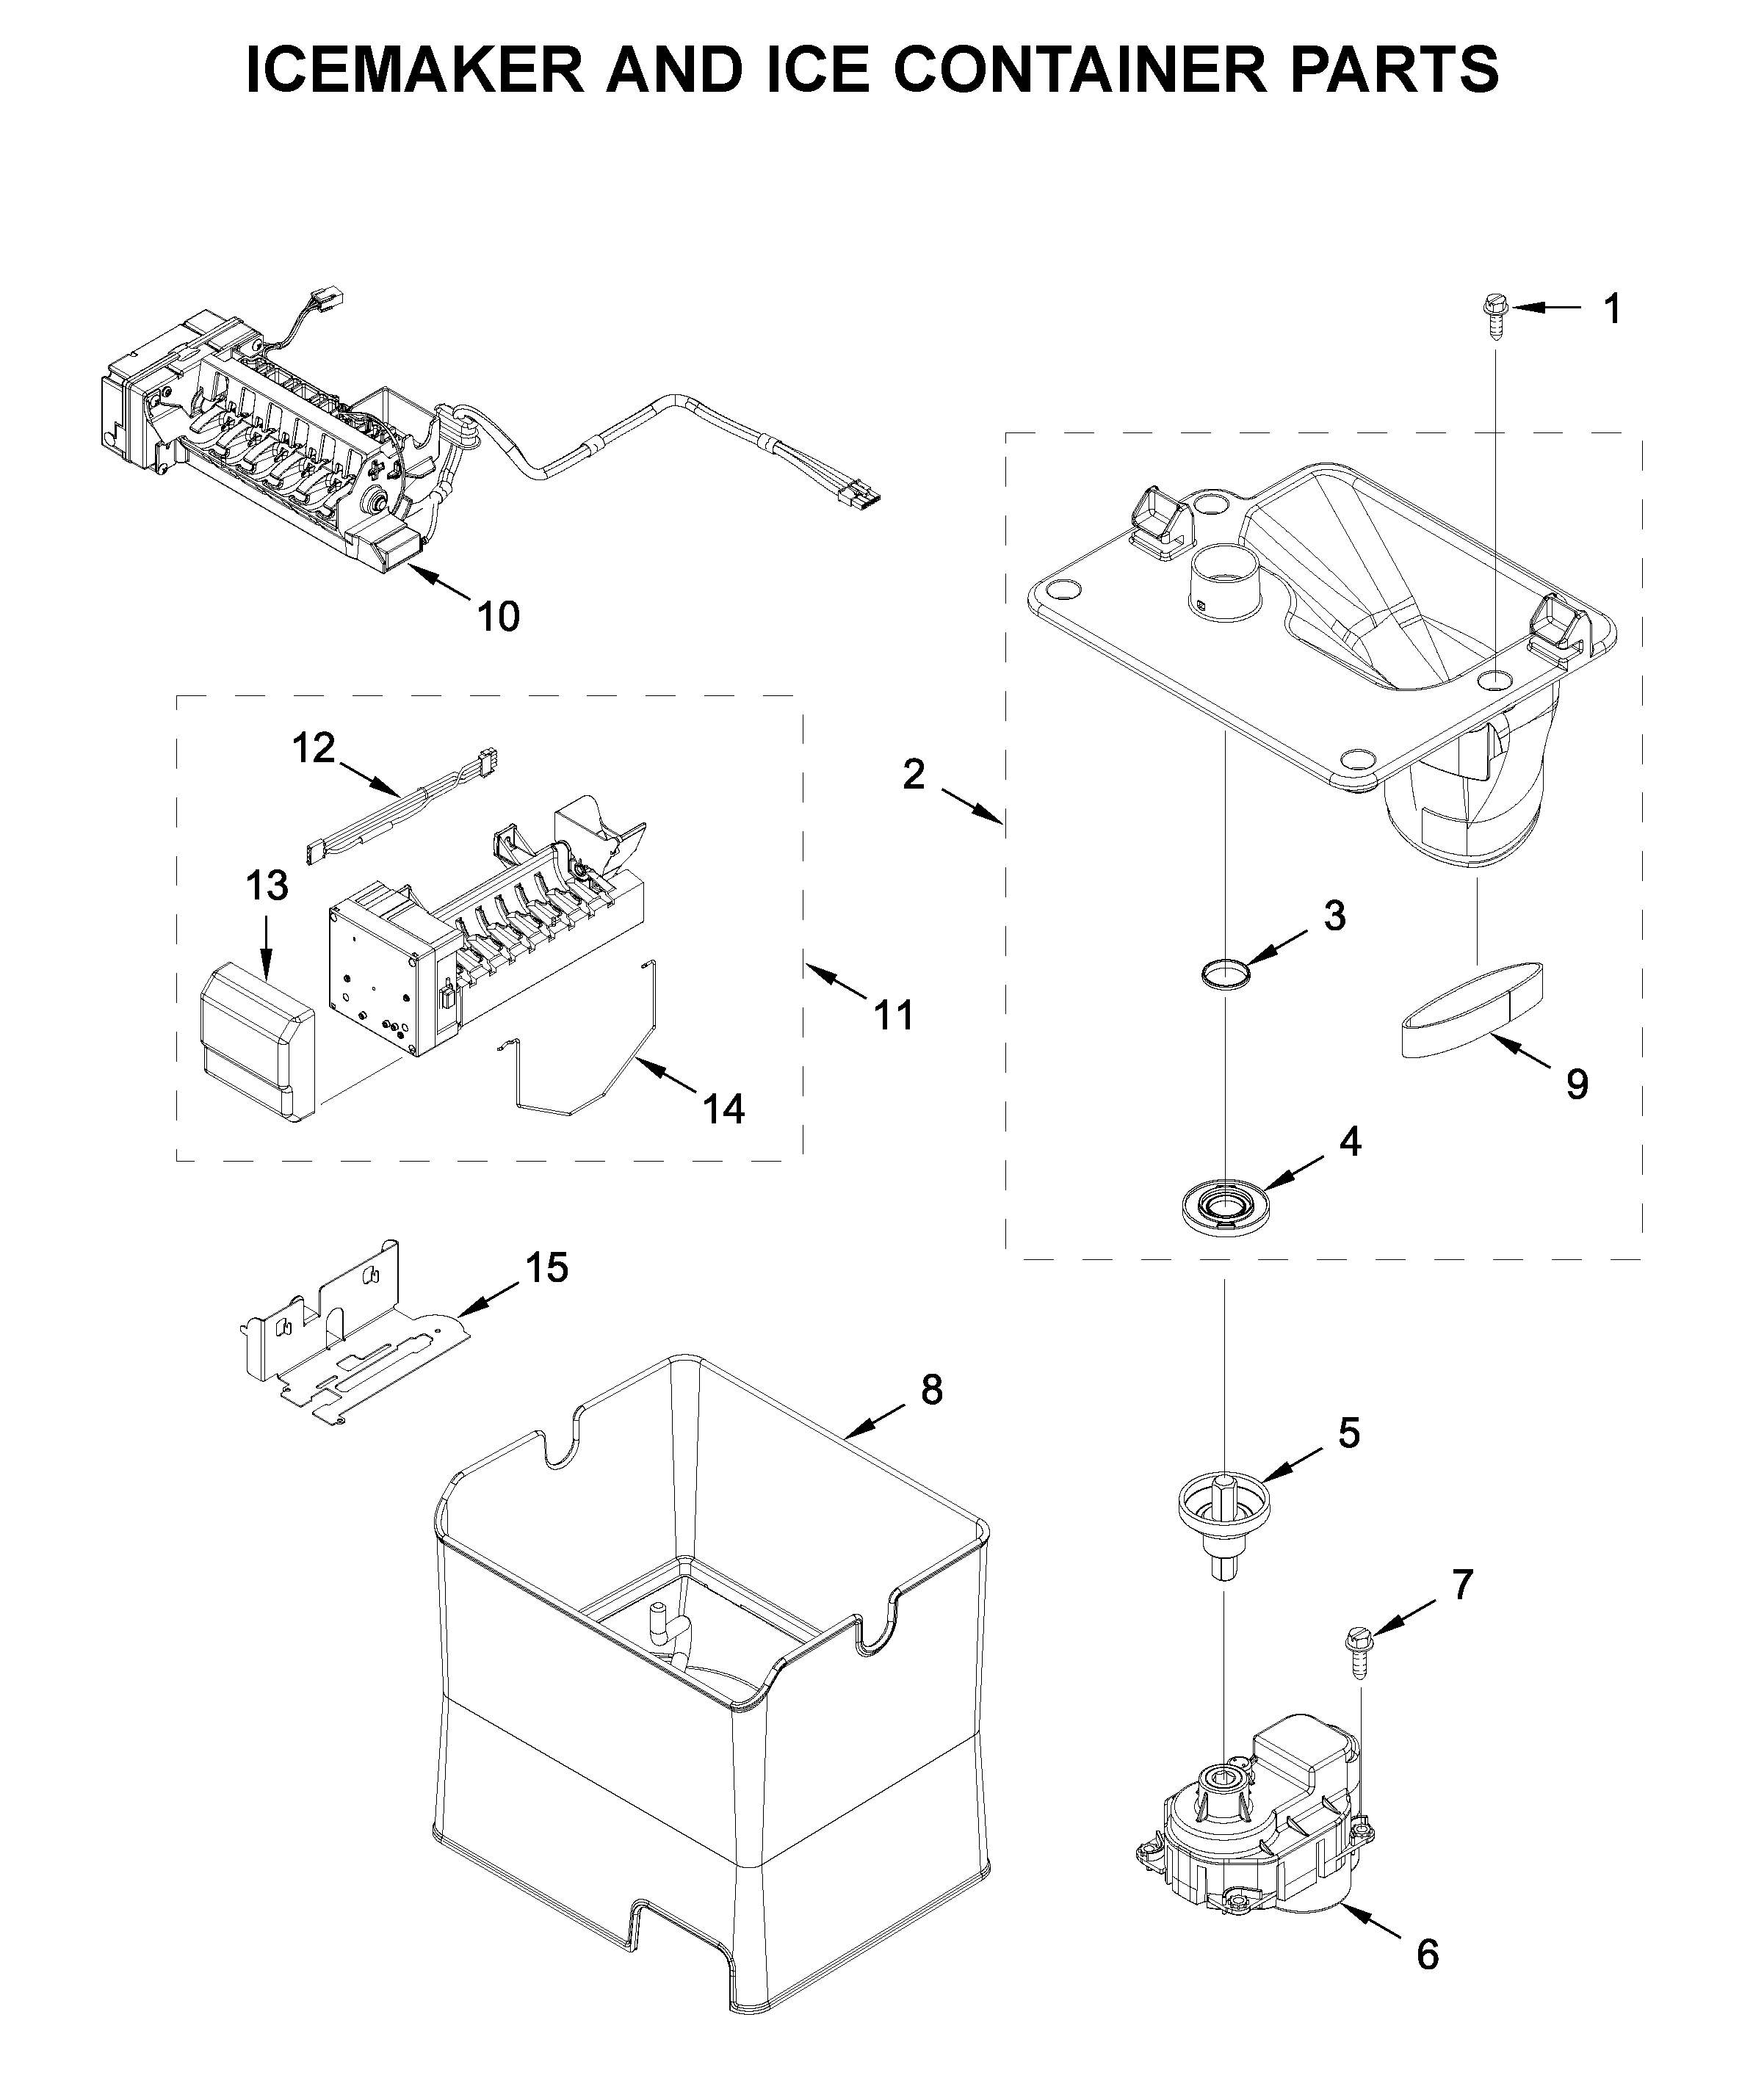 Whirlpool WRF767SDHZ01 icemaker and ice container parts diagram